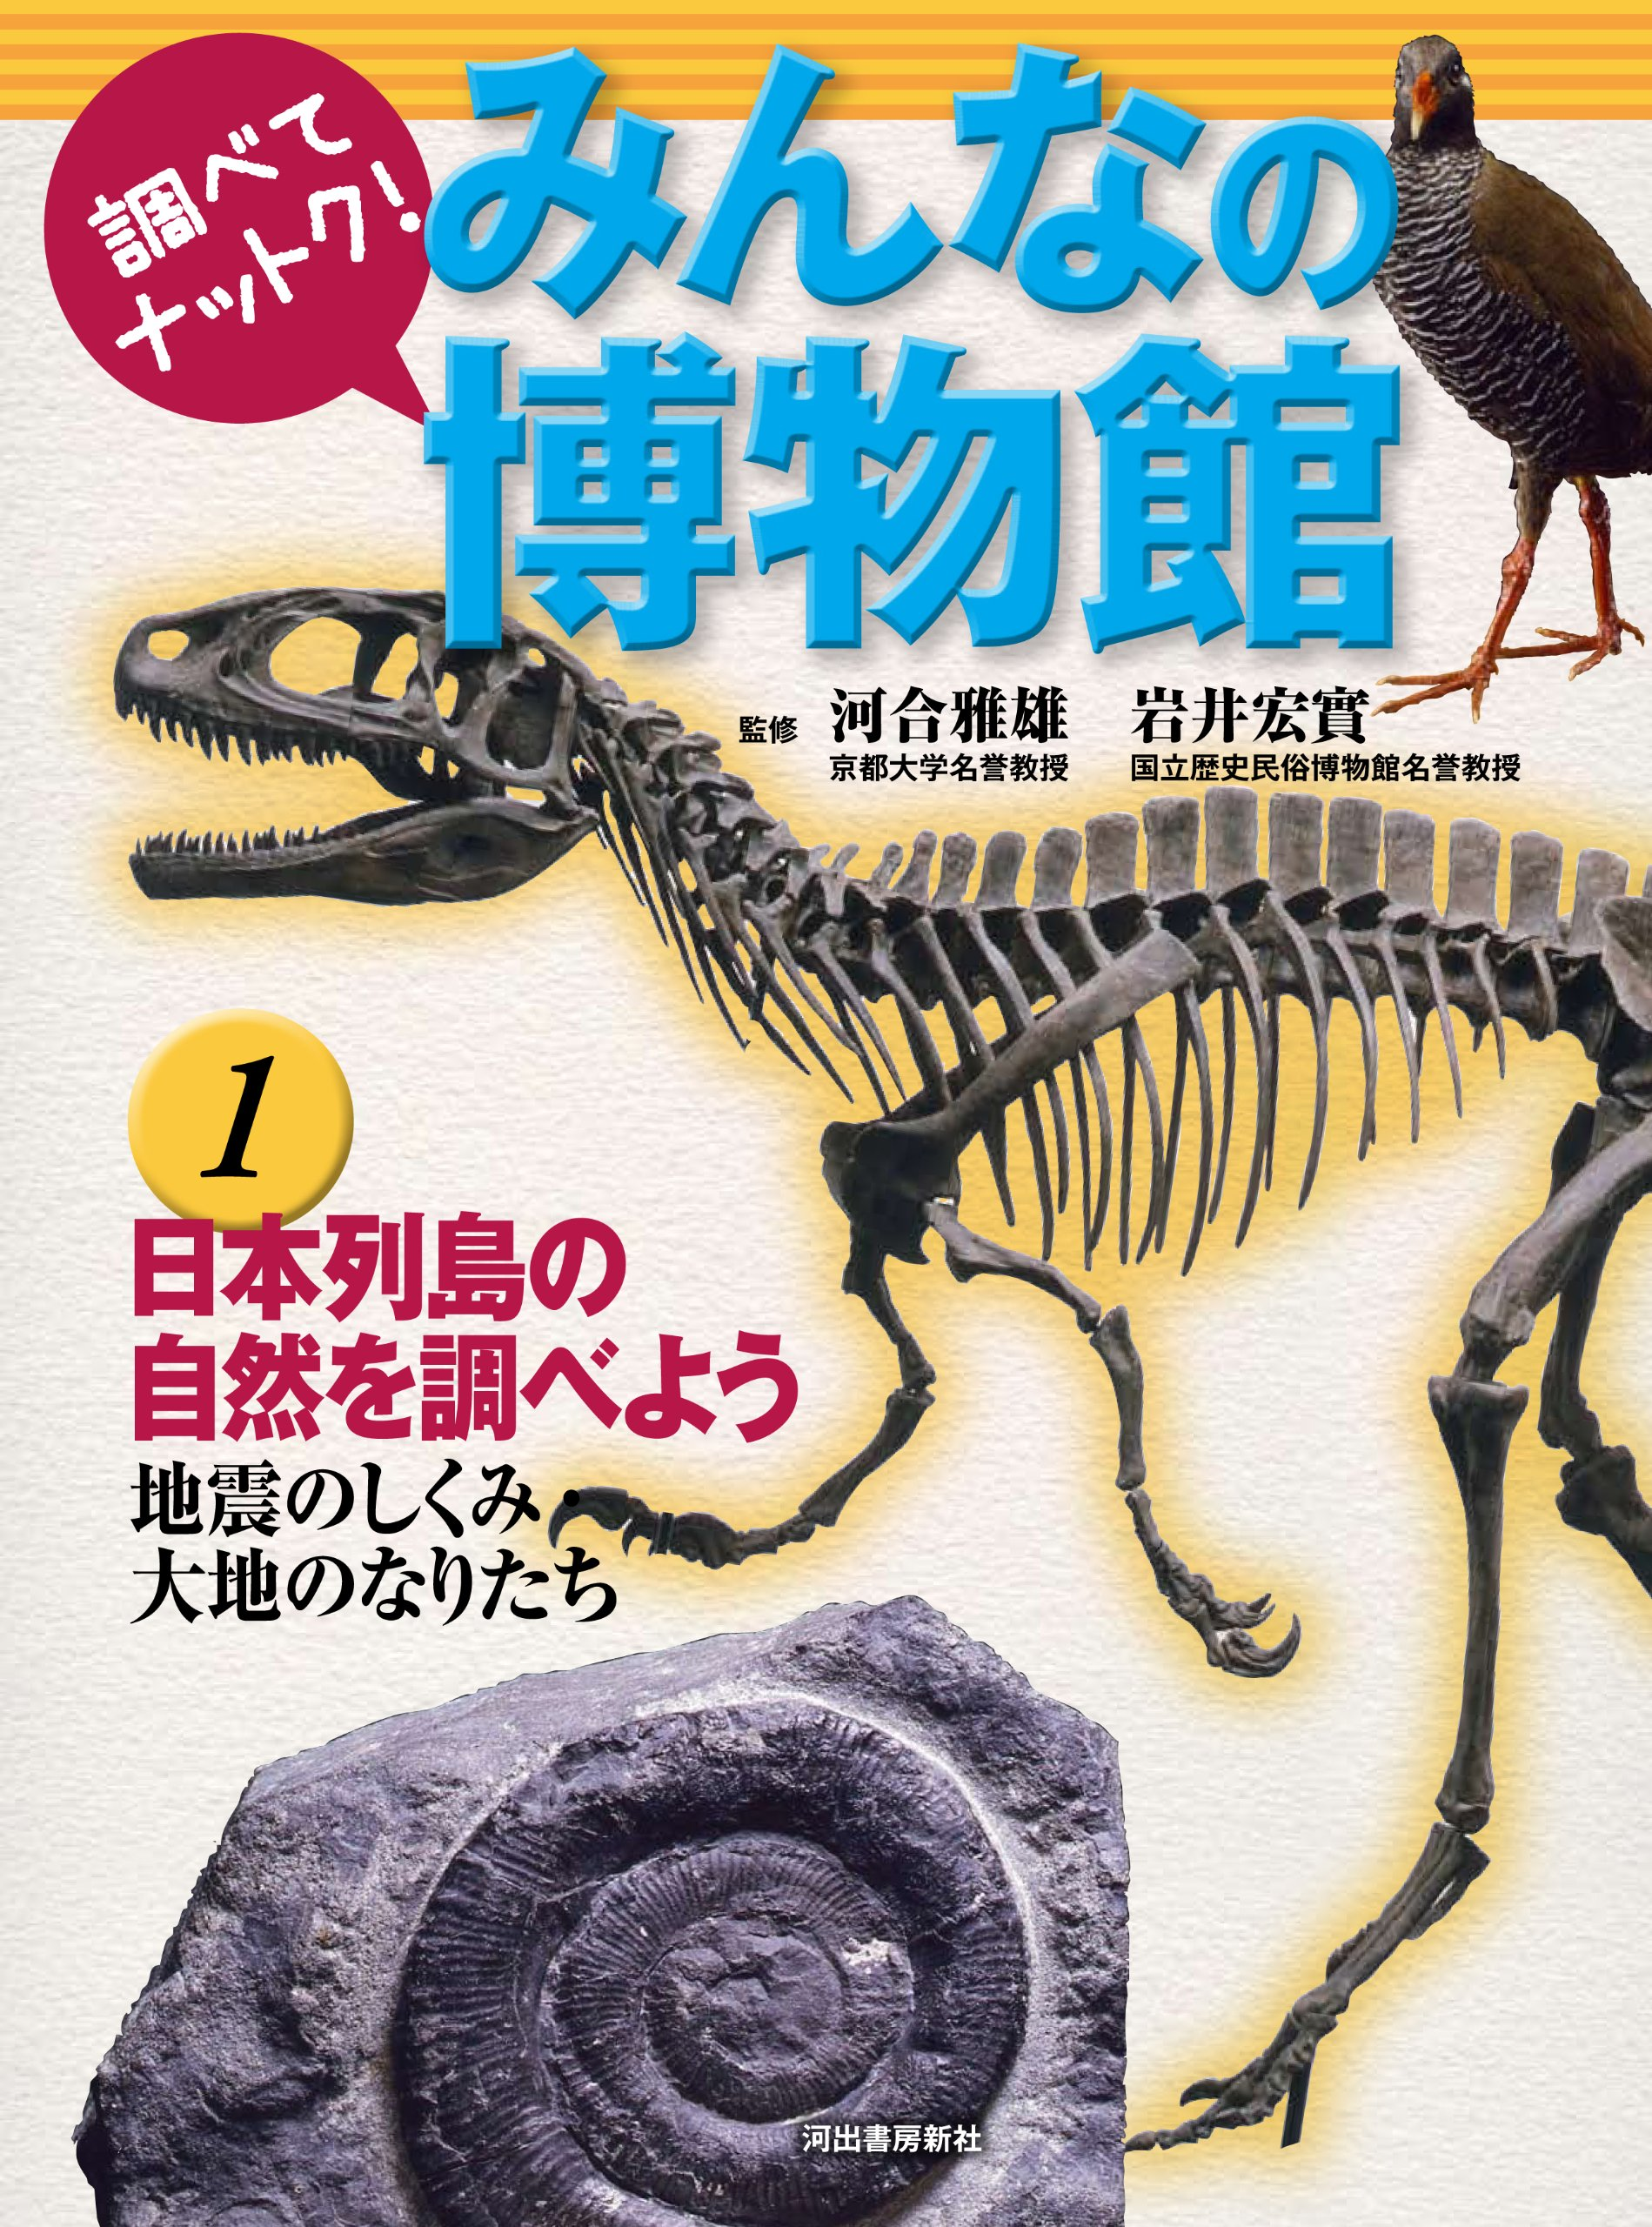 Download Who is of earth-mechanism of the earthquake that will examine the nature of the museum 1 --- Japanese islands of community (Museum of everyone [all five volumes, one extra issue]) (2012) ISBN: 4309614914 [Japanese Import] ebook